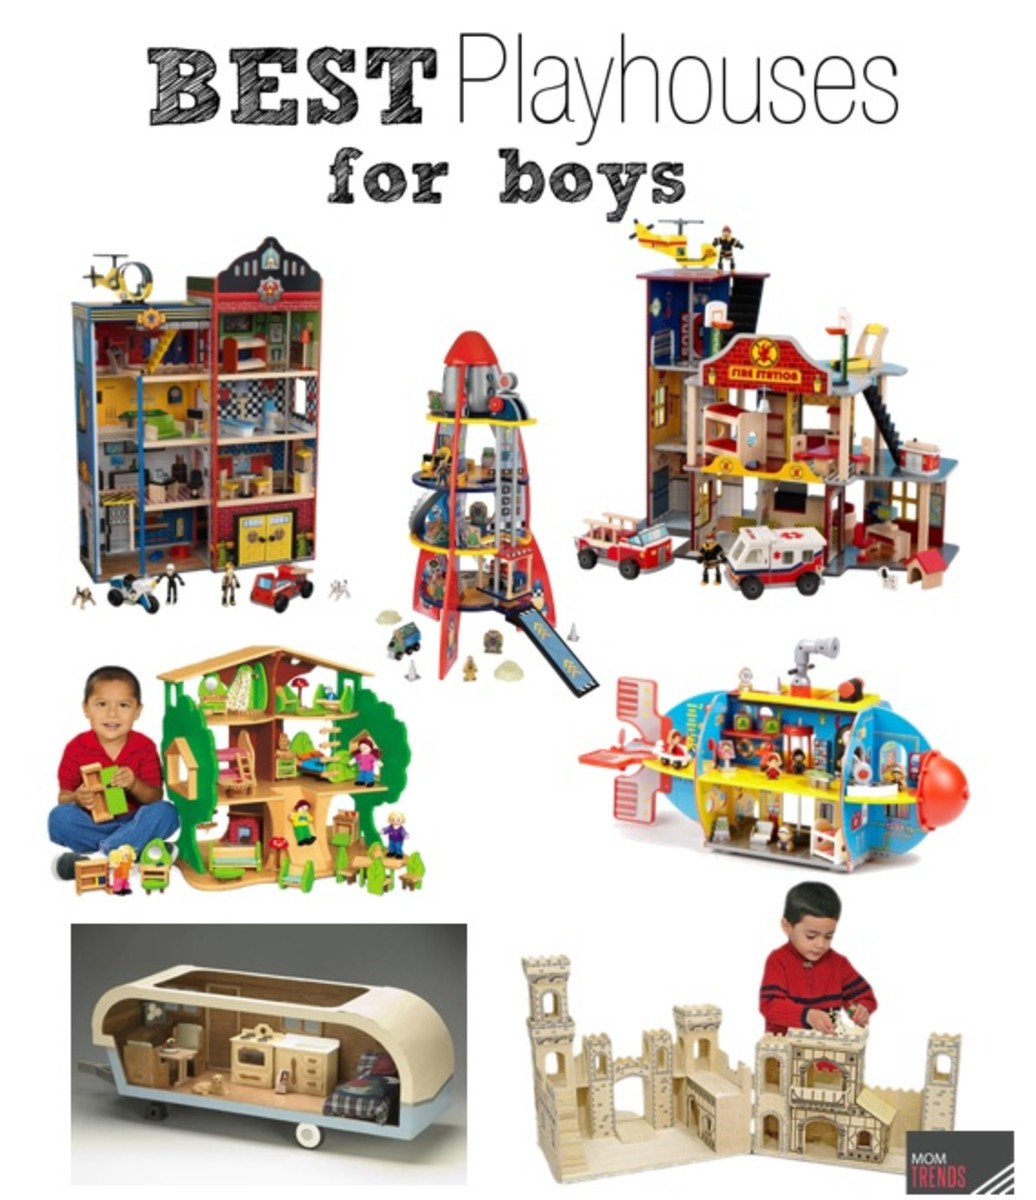 Best Playhouses for Boys